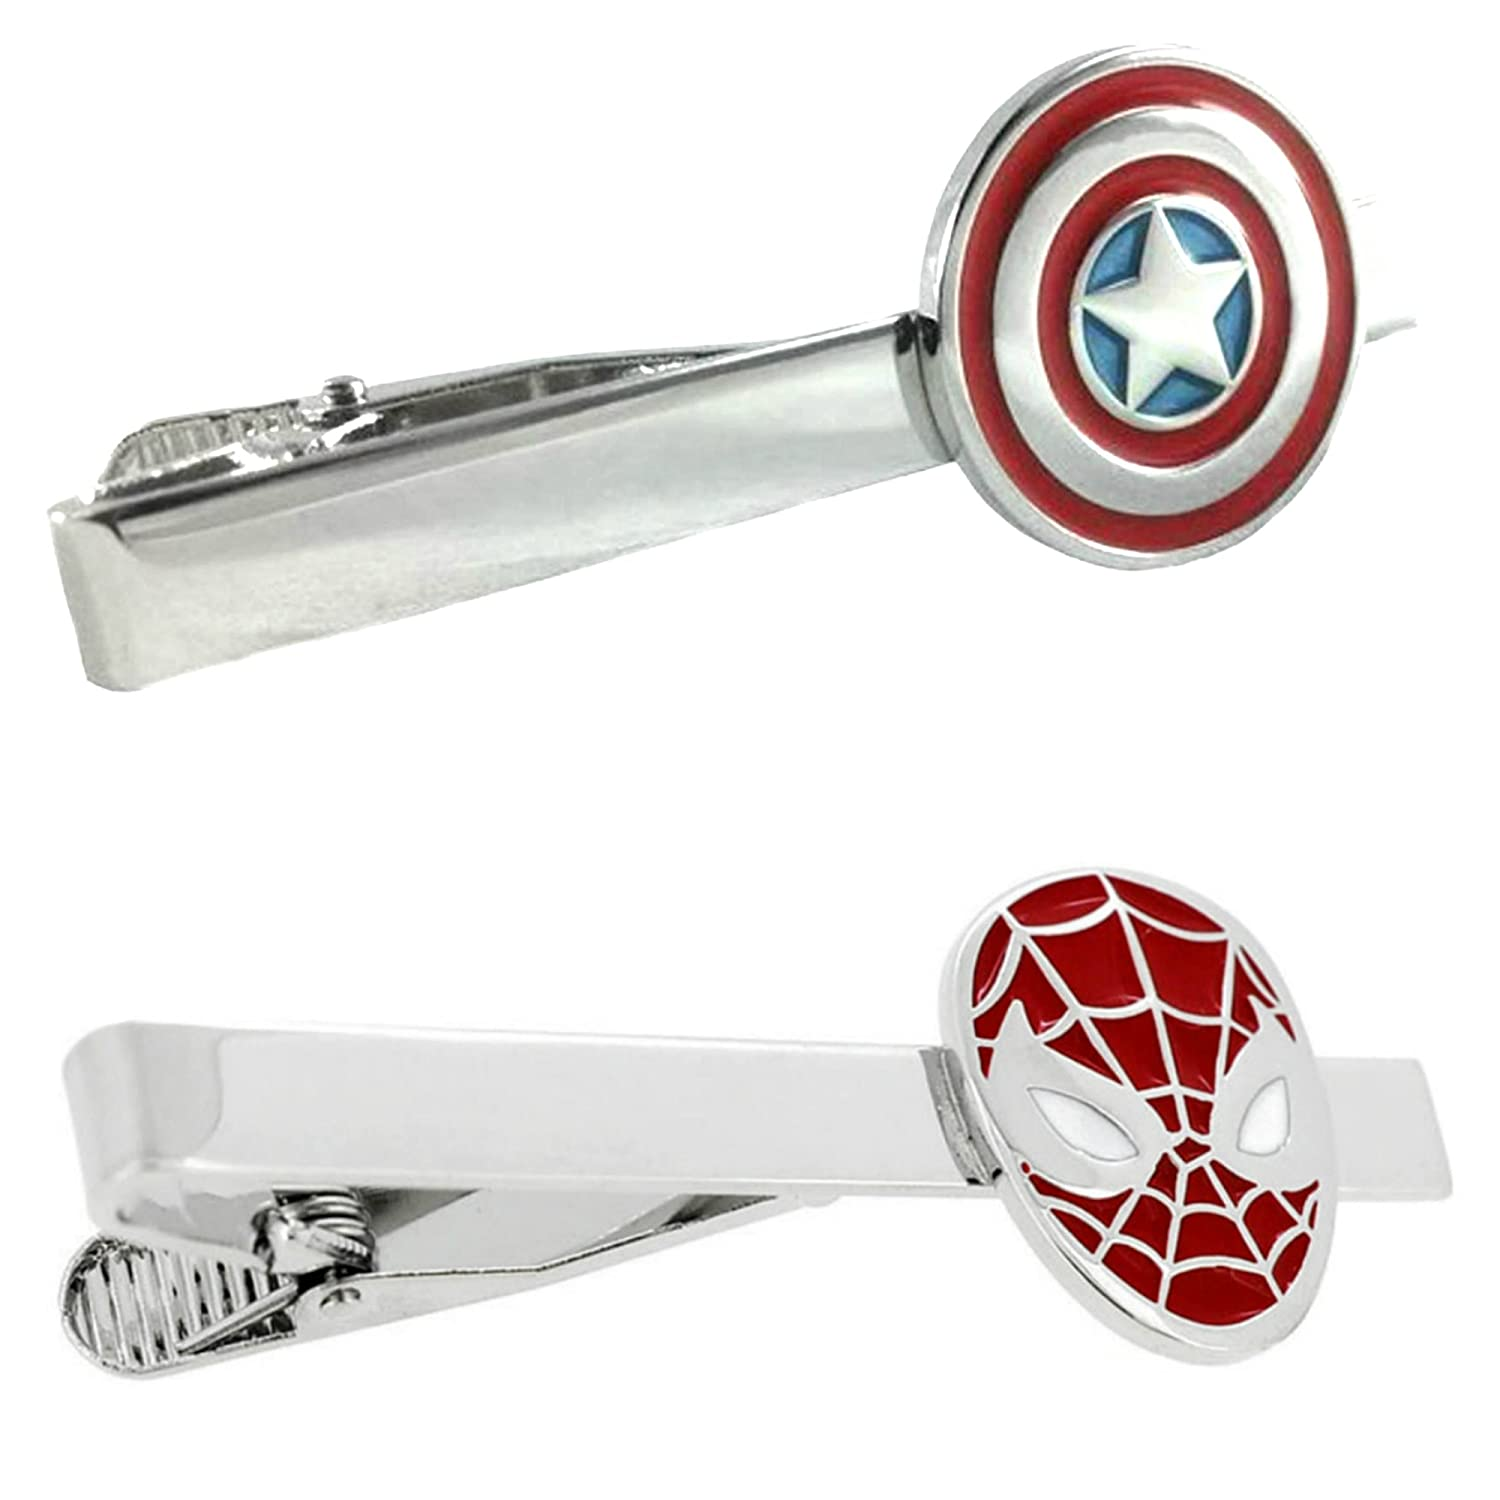 Outlander Marvel Comics - Captain America & Spiderman - Tiebar Tie Clasp Set of 2 Wedding Superhero Logo w/Gift Box Outlander Brand